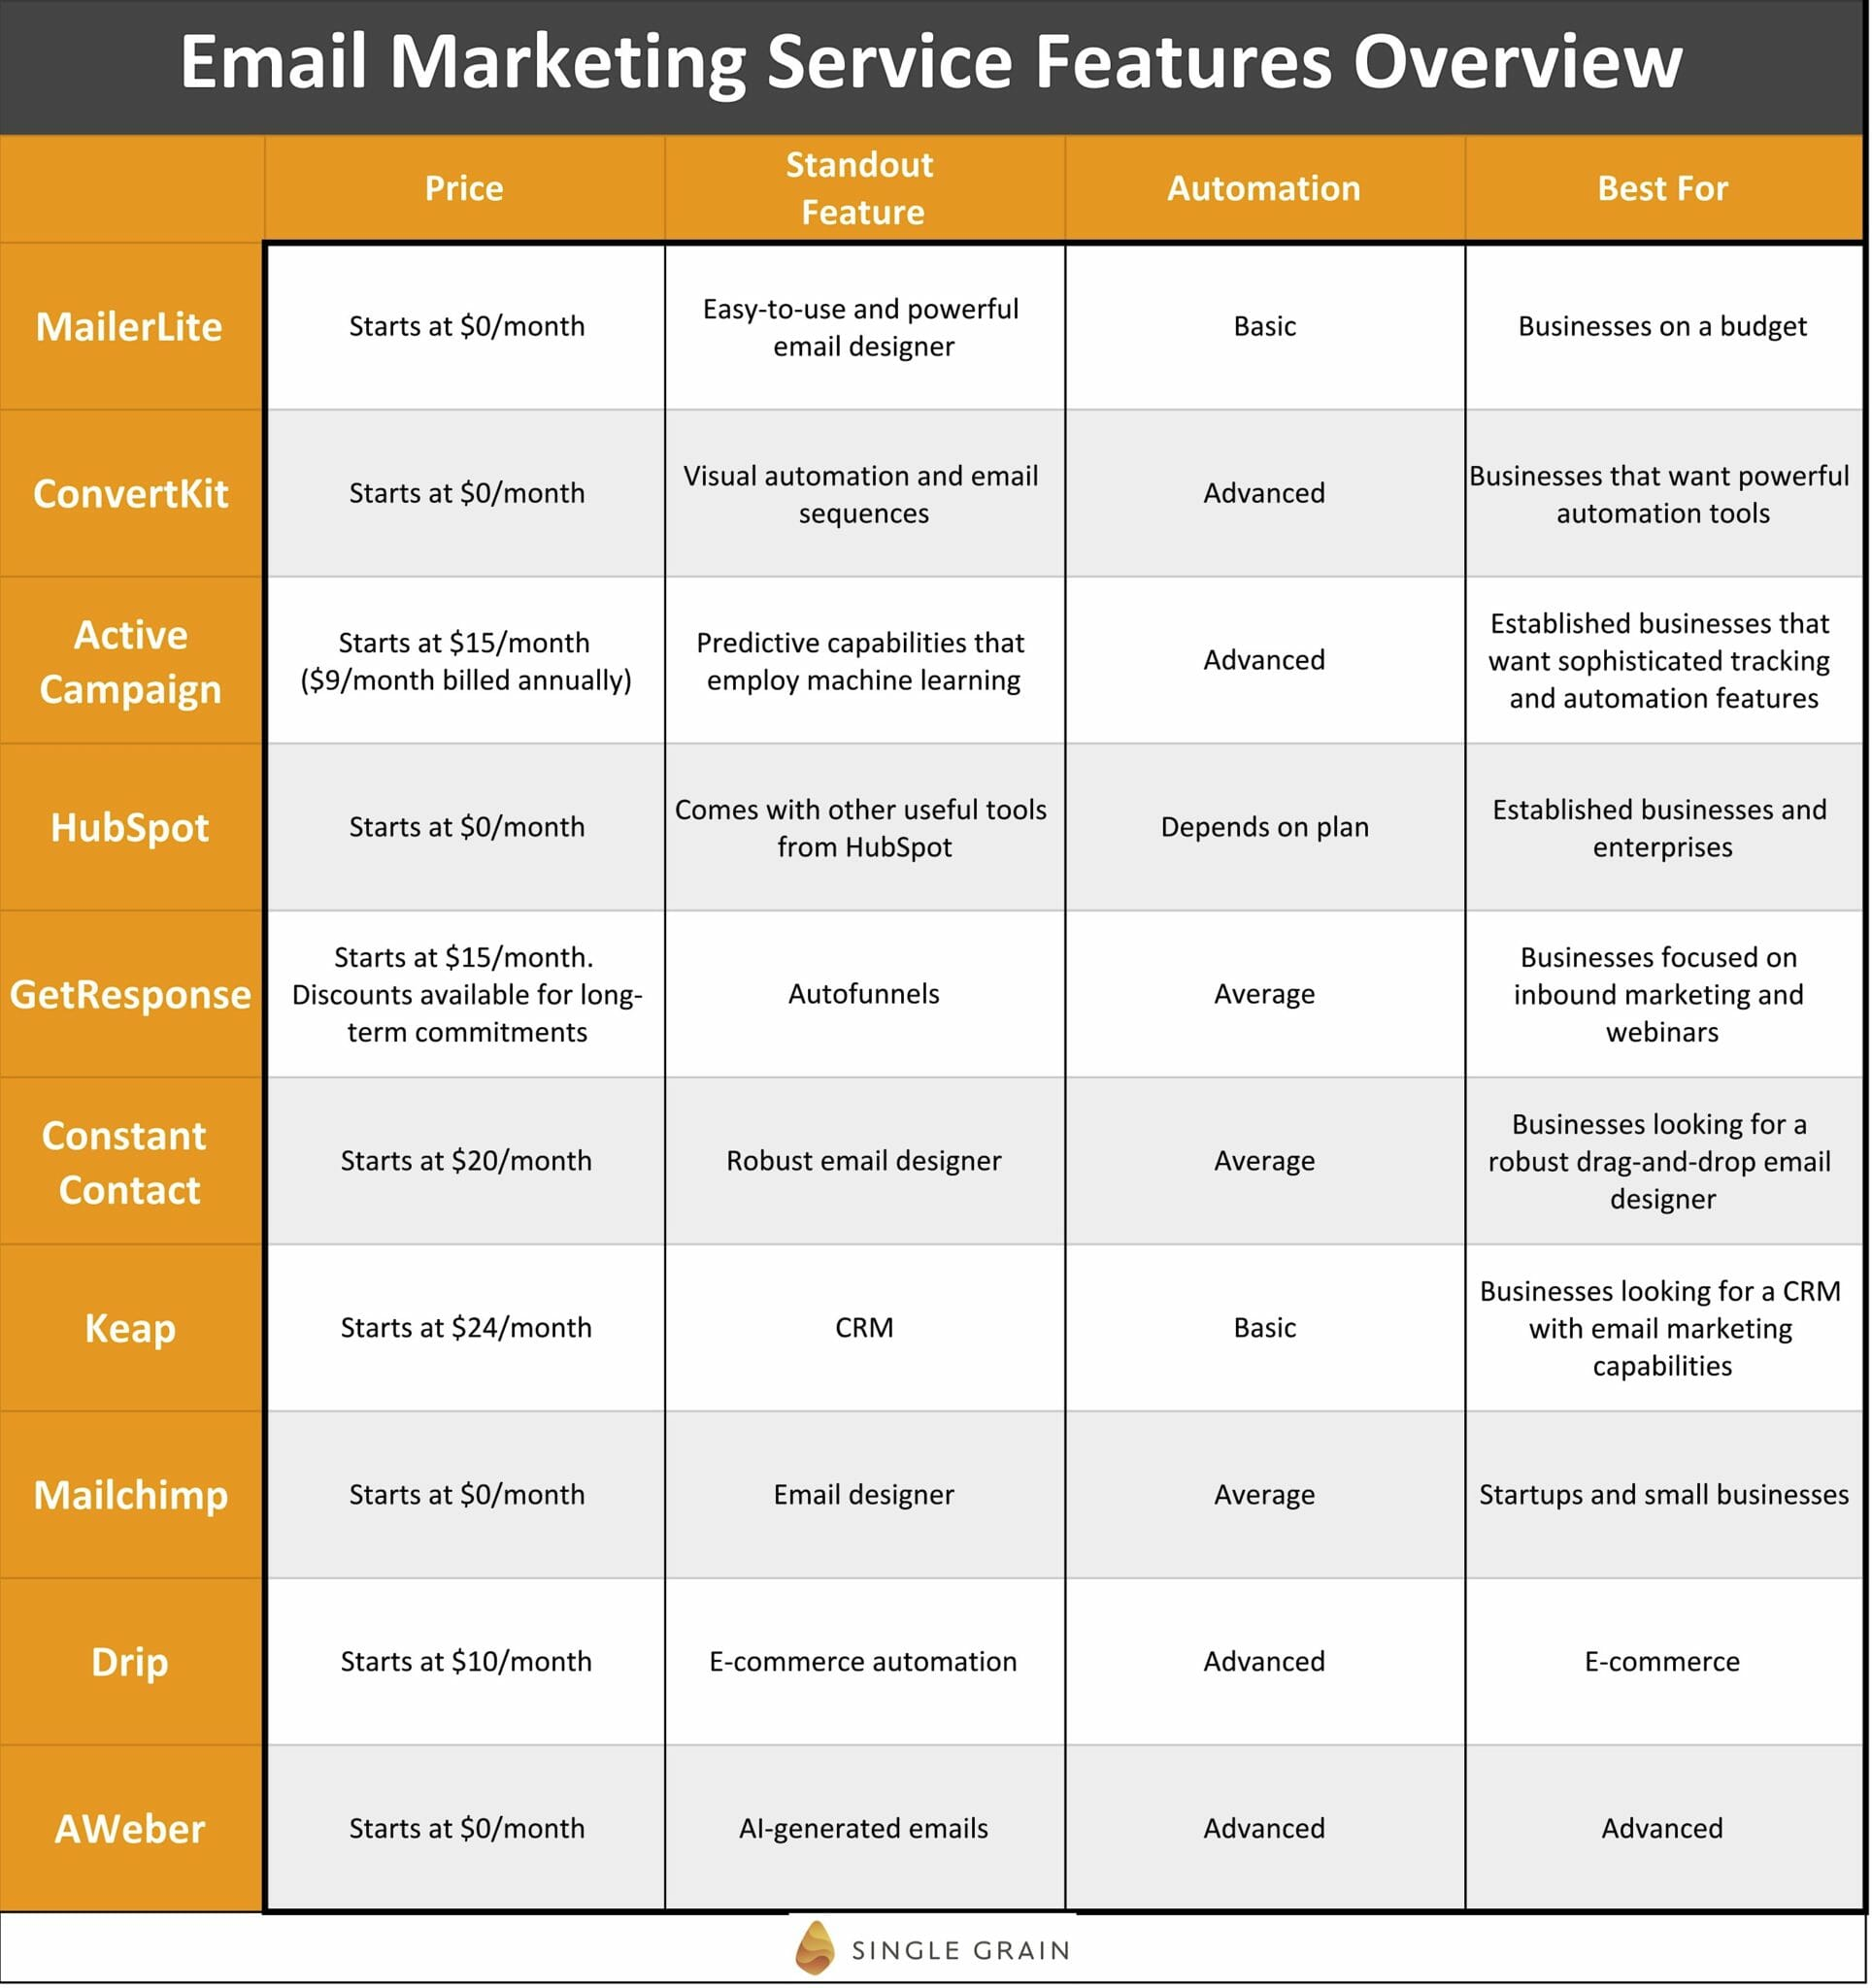 Email Marketing Service Features Overview